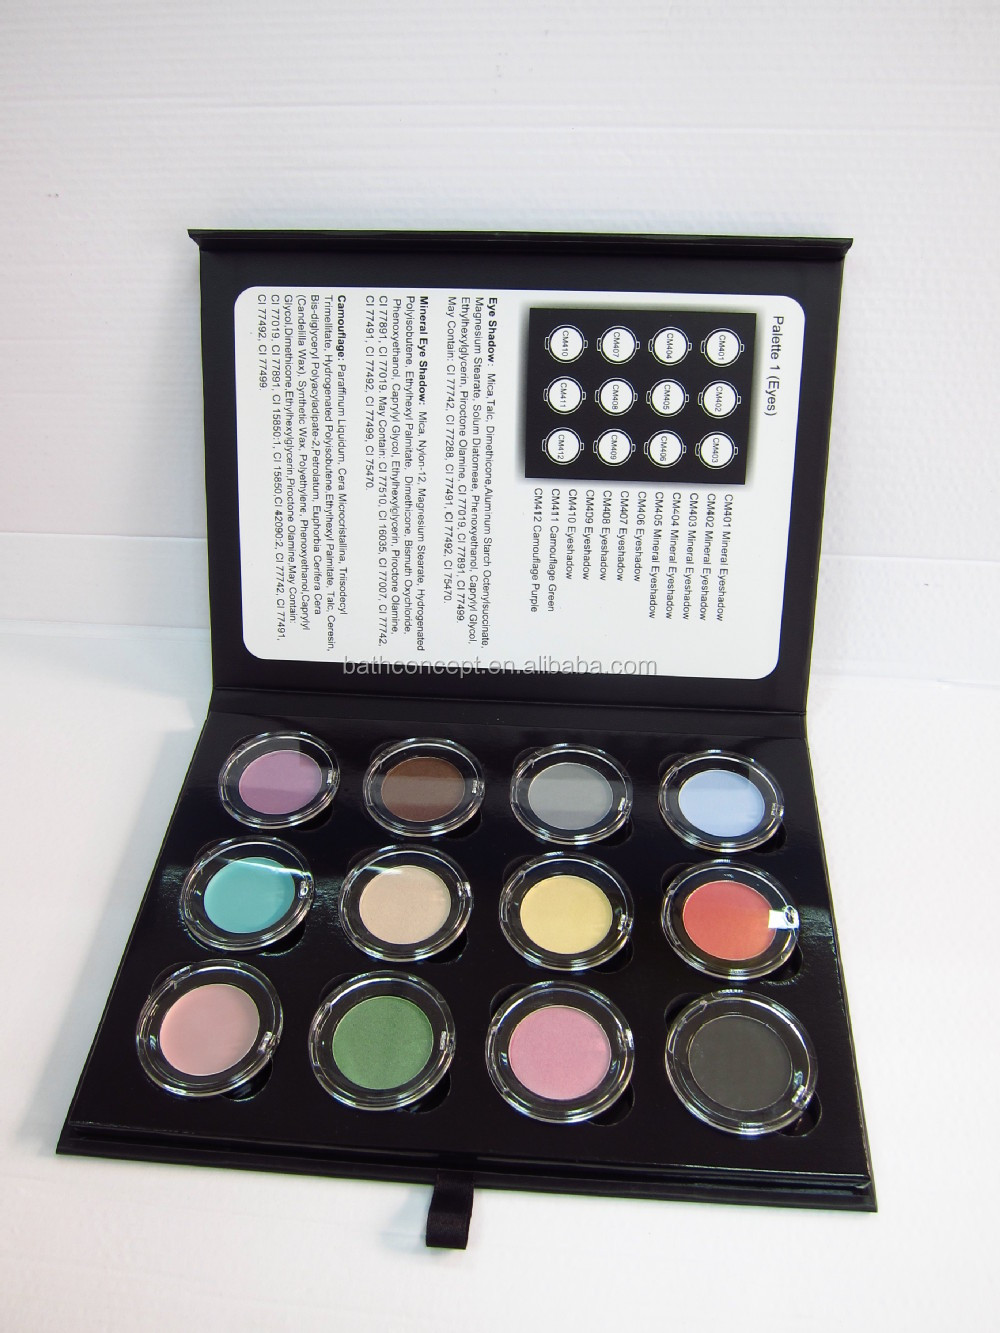 Powder Form and Mineral Ingredient eyeshadow private label cosmetics